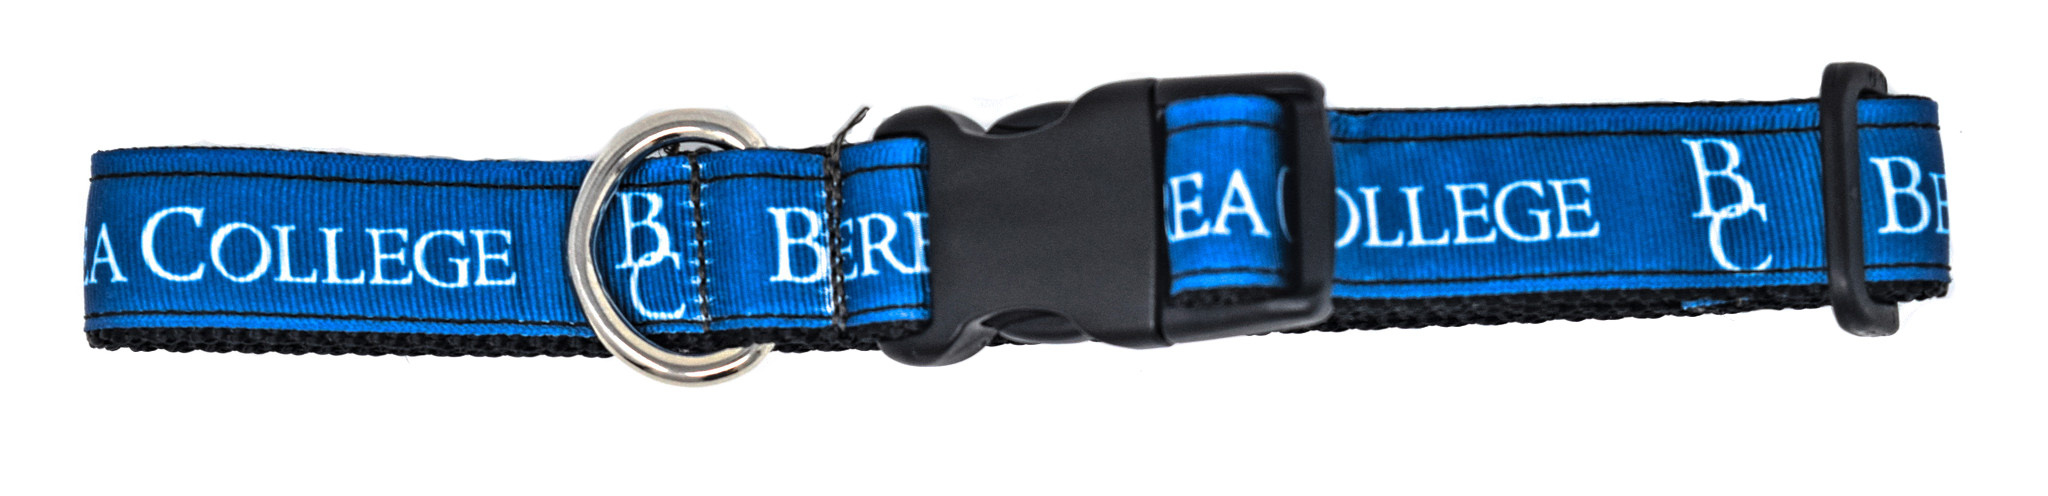 Berea Dog Collar-2